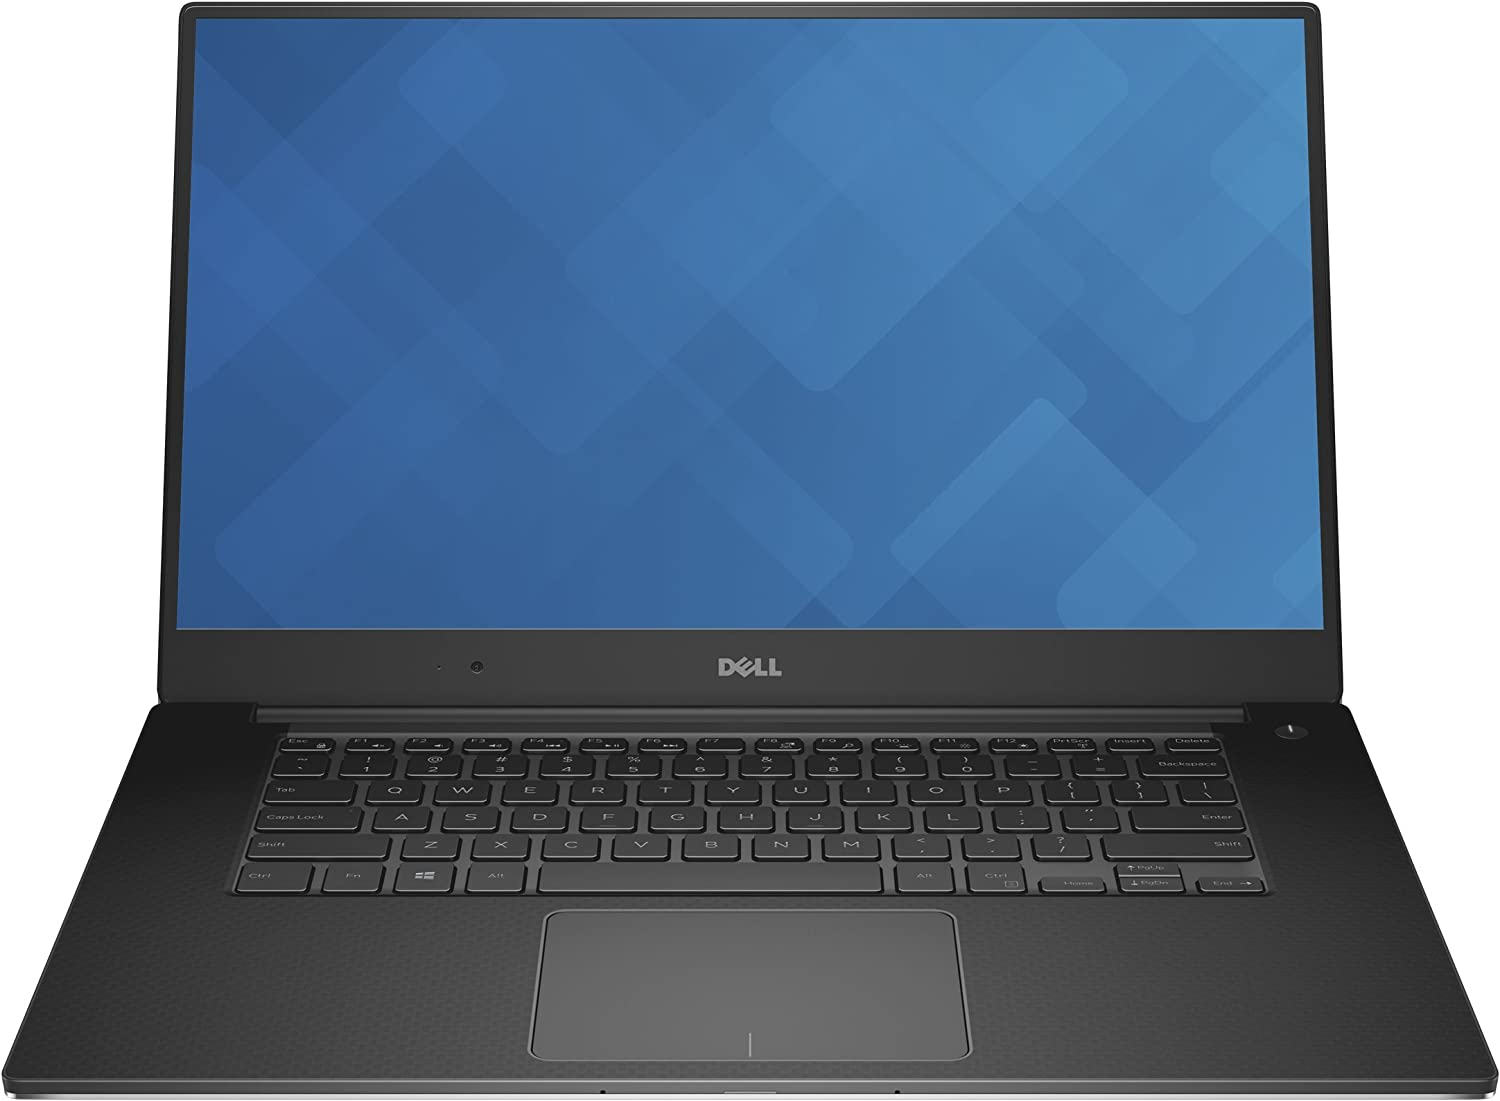 Dell XPS 15 9550 Laptop 15.6in 4K UHD (3840 x 2160) Touch, Intel i7-6700HQ 3.5GHz Quad Core 16GB RAM 512GB SSD NVIDIA GeForce GTX 960M w/ 2GB GDDR5 Windows 10 Professional (Renewed)